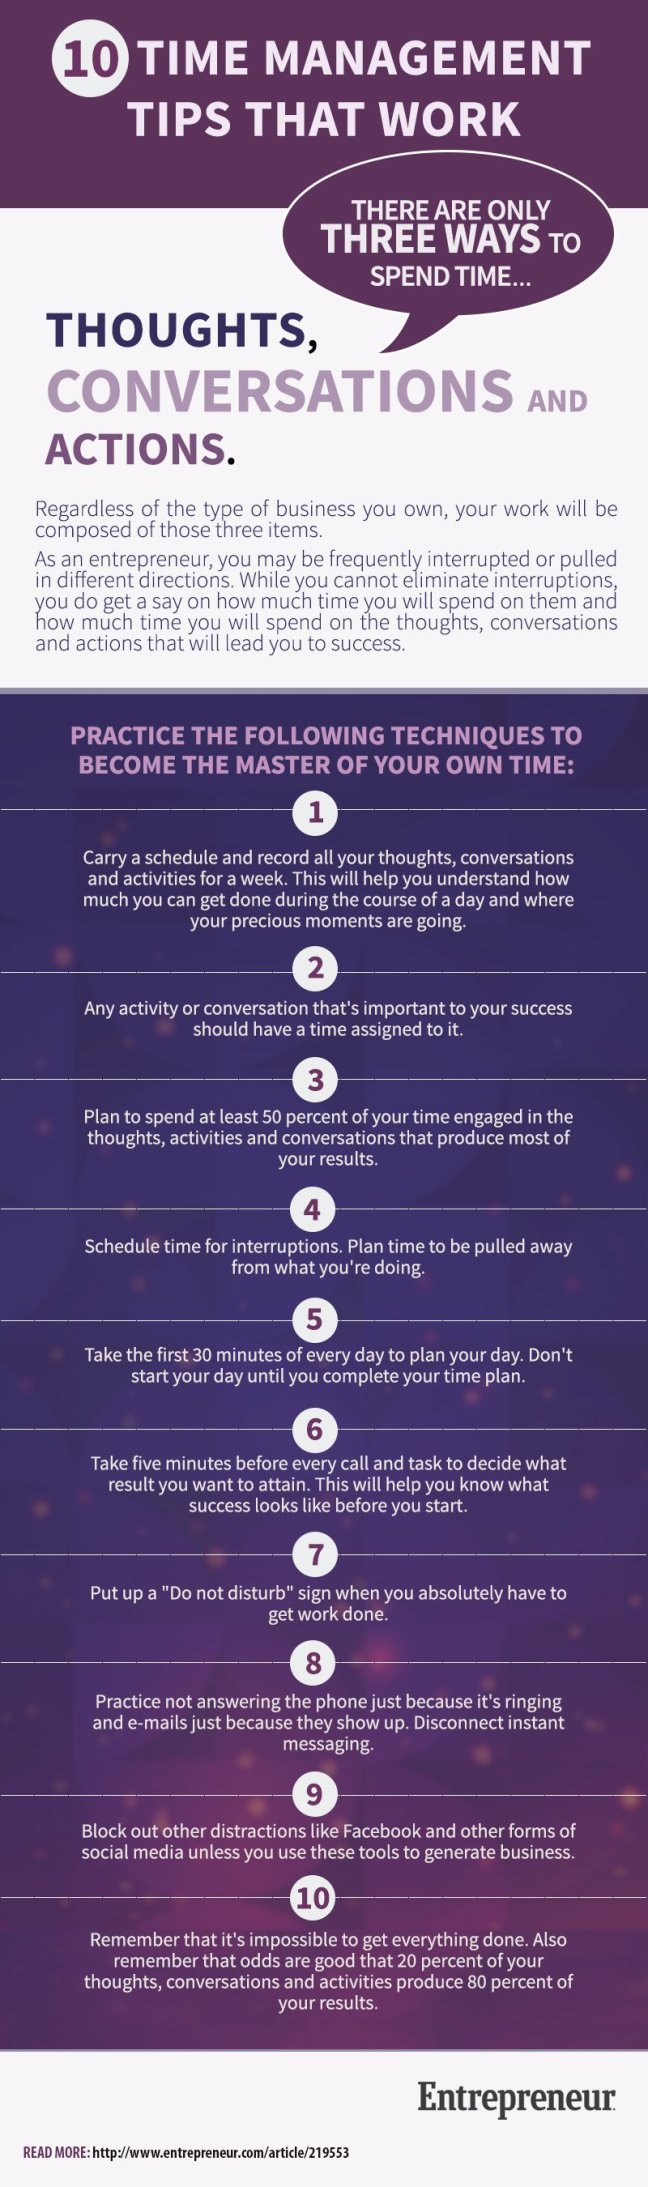 10-time-management-tips-that-work-infographic.jpg